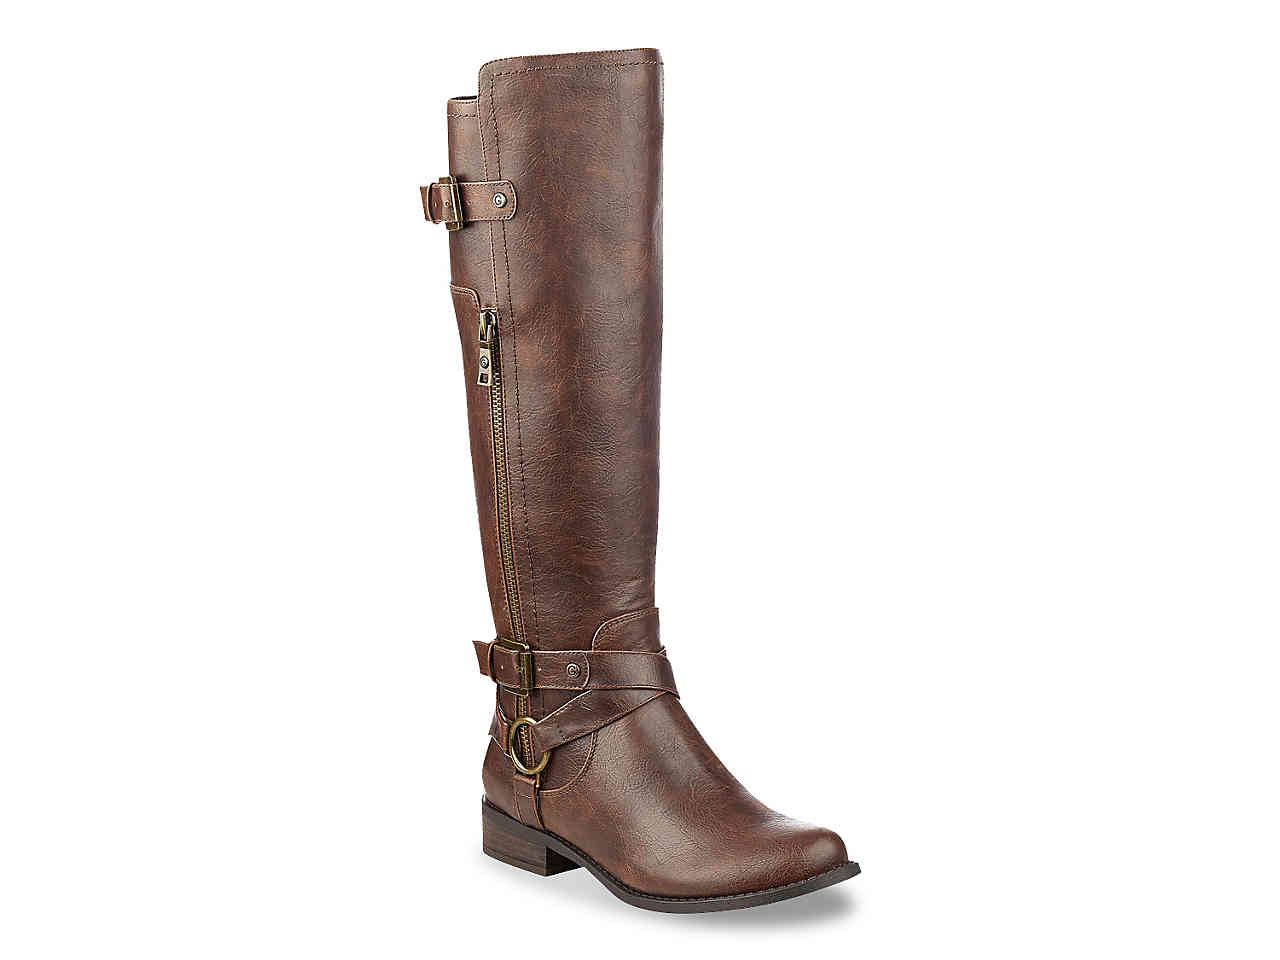 Riding boots herly wide calf riding boot CYHCFJQ